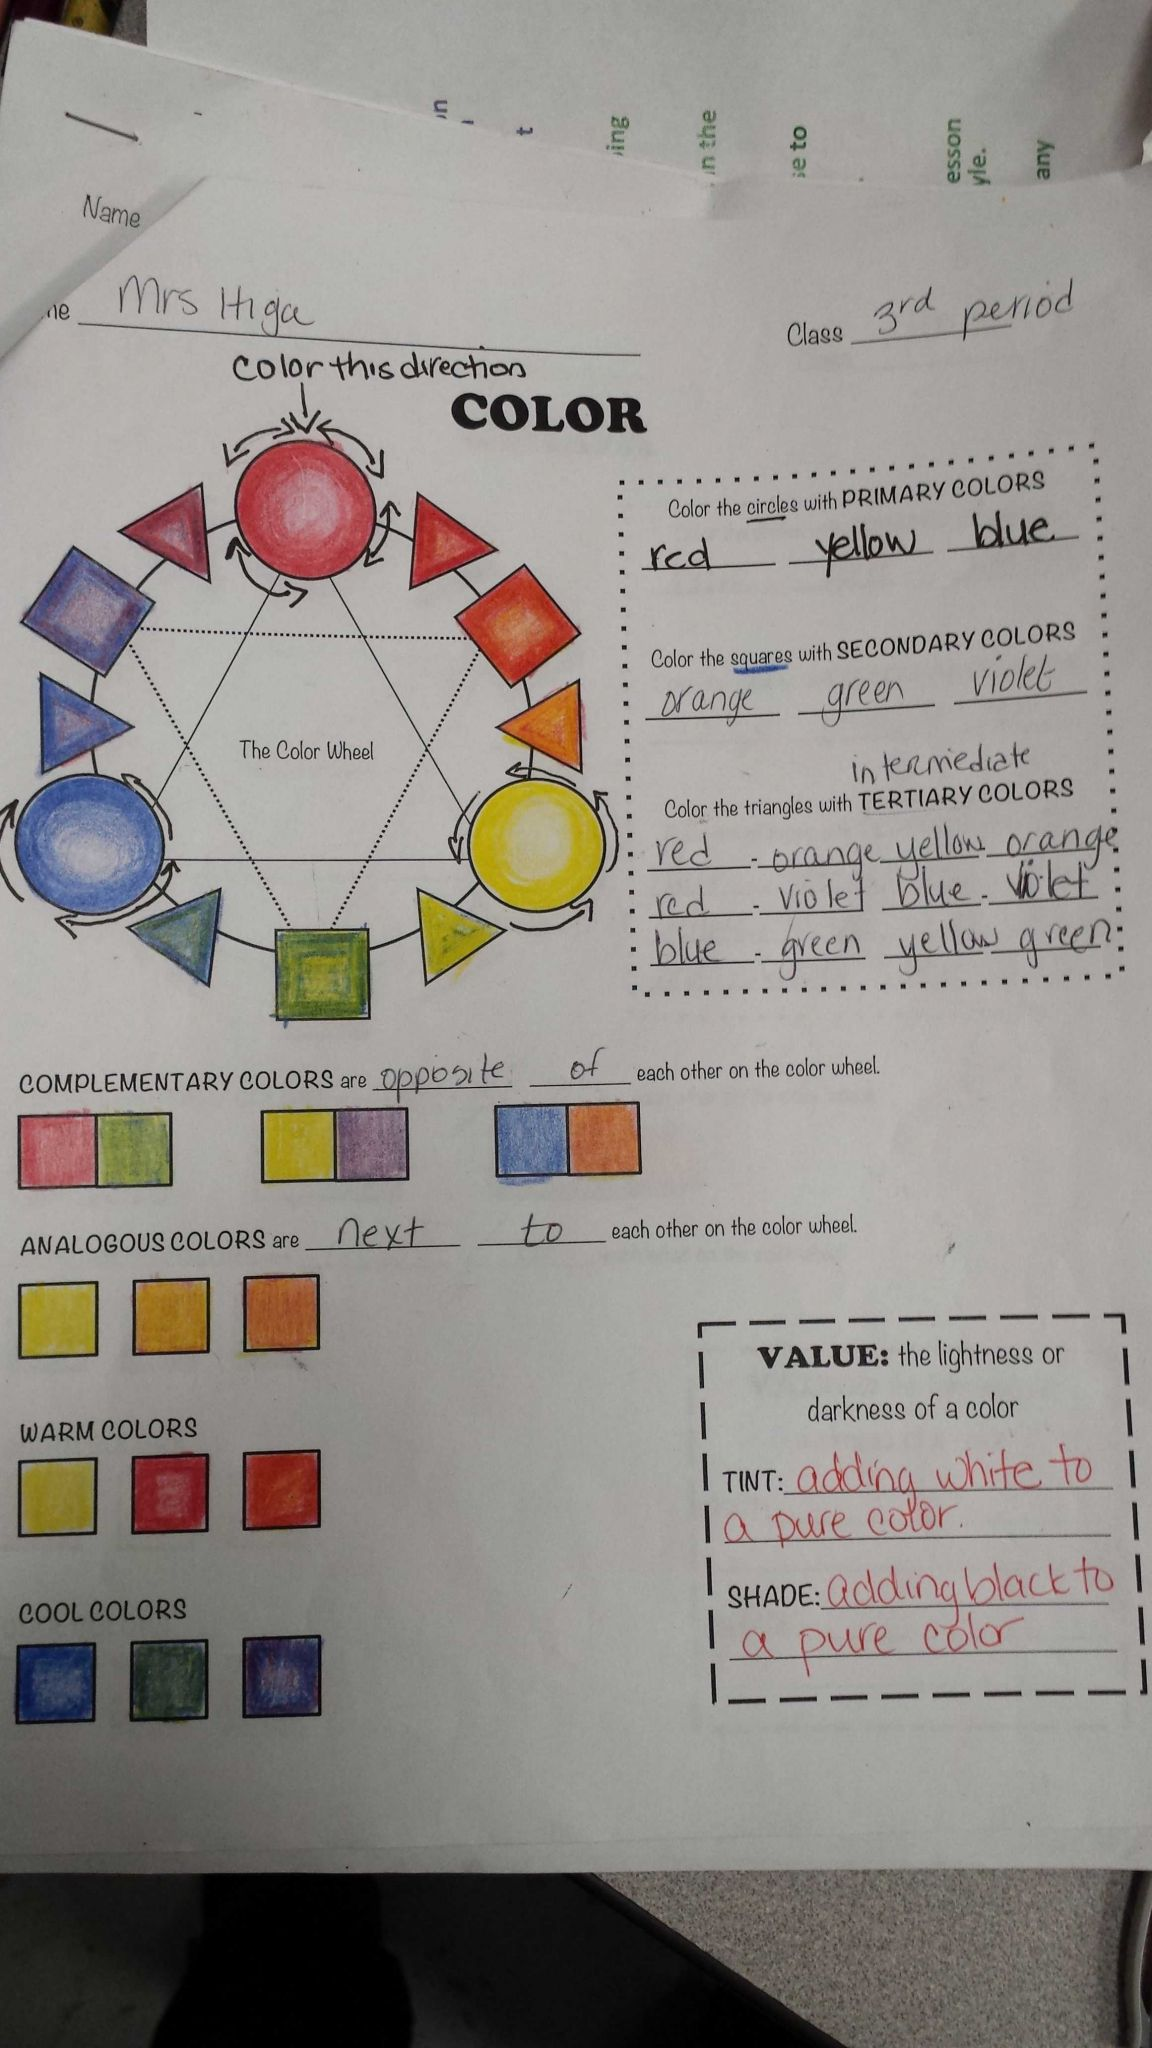 Color theory Worksheet and Color Wheel Done with Color Pencils Students Blended Colors to Make